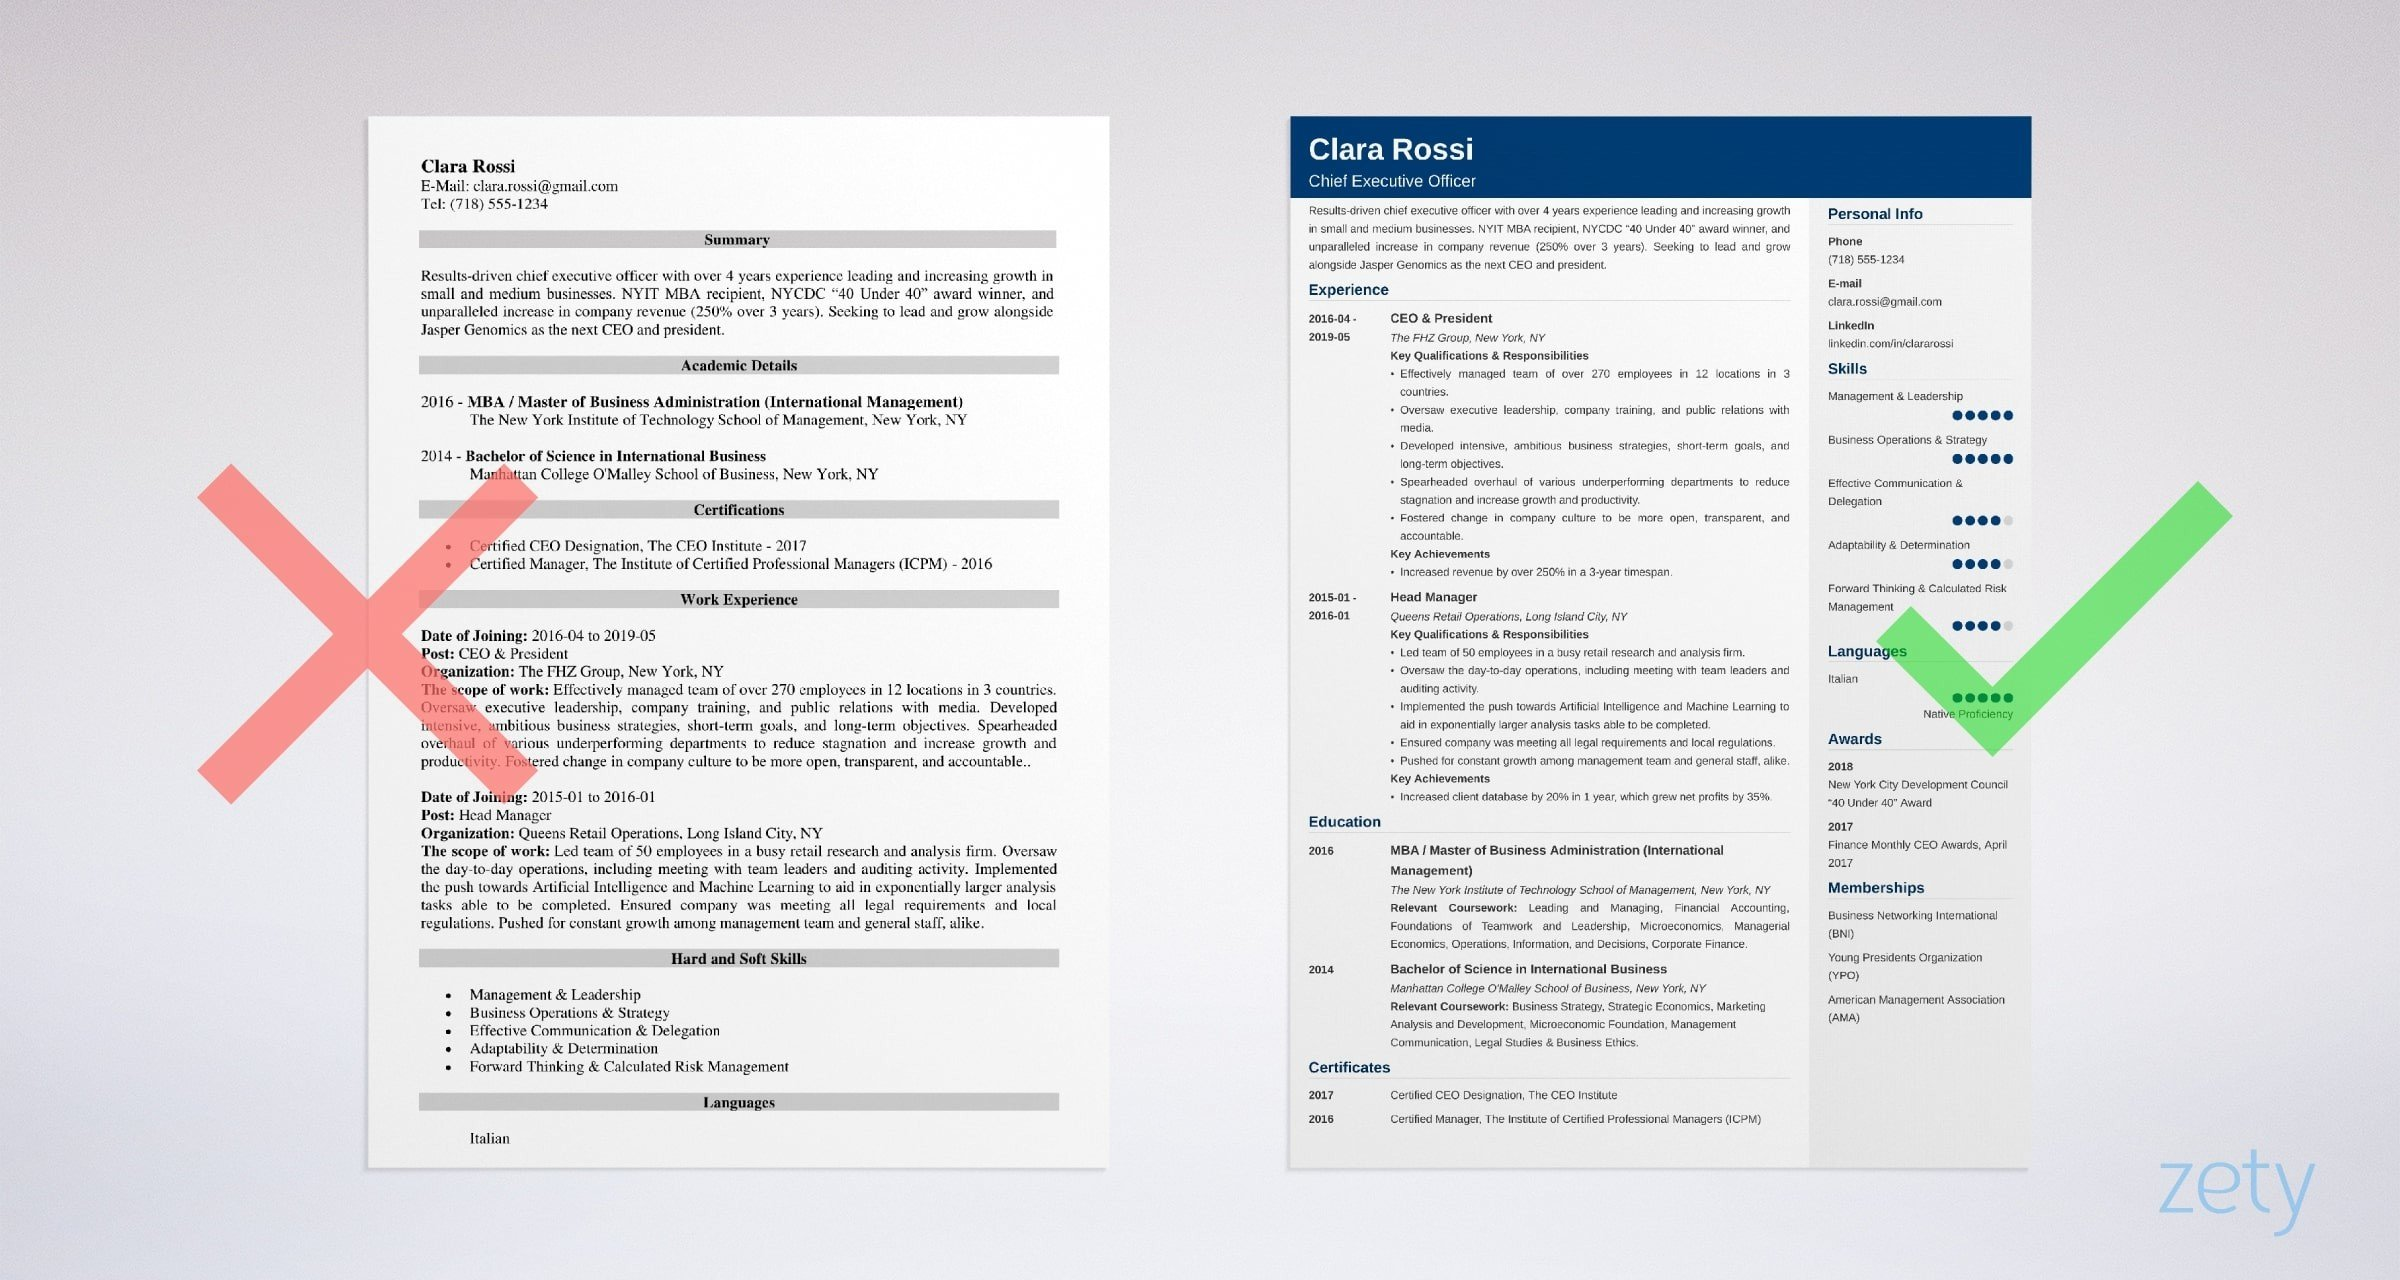 chief executive officer ceo resume template examples free templates example accounting Resume Free Ceo Resume Templates